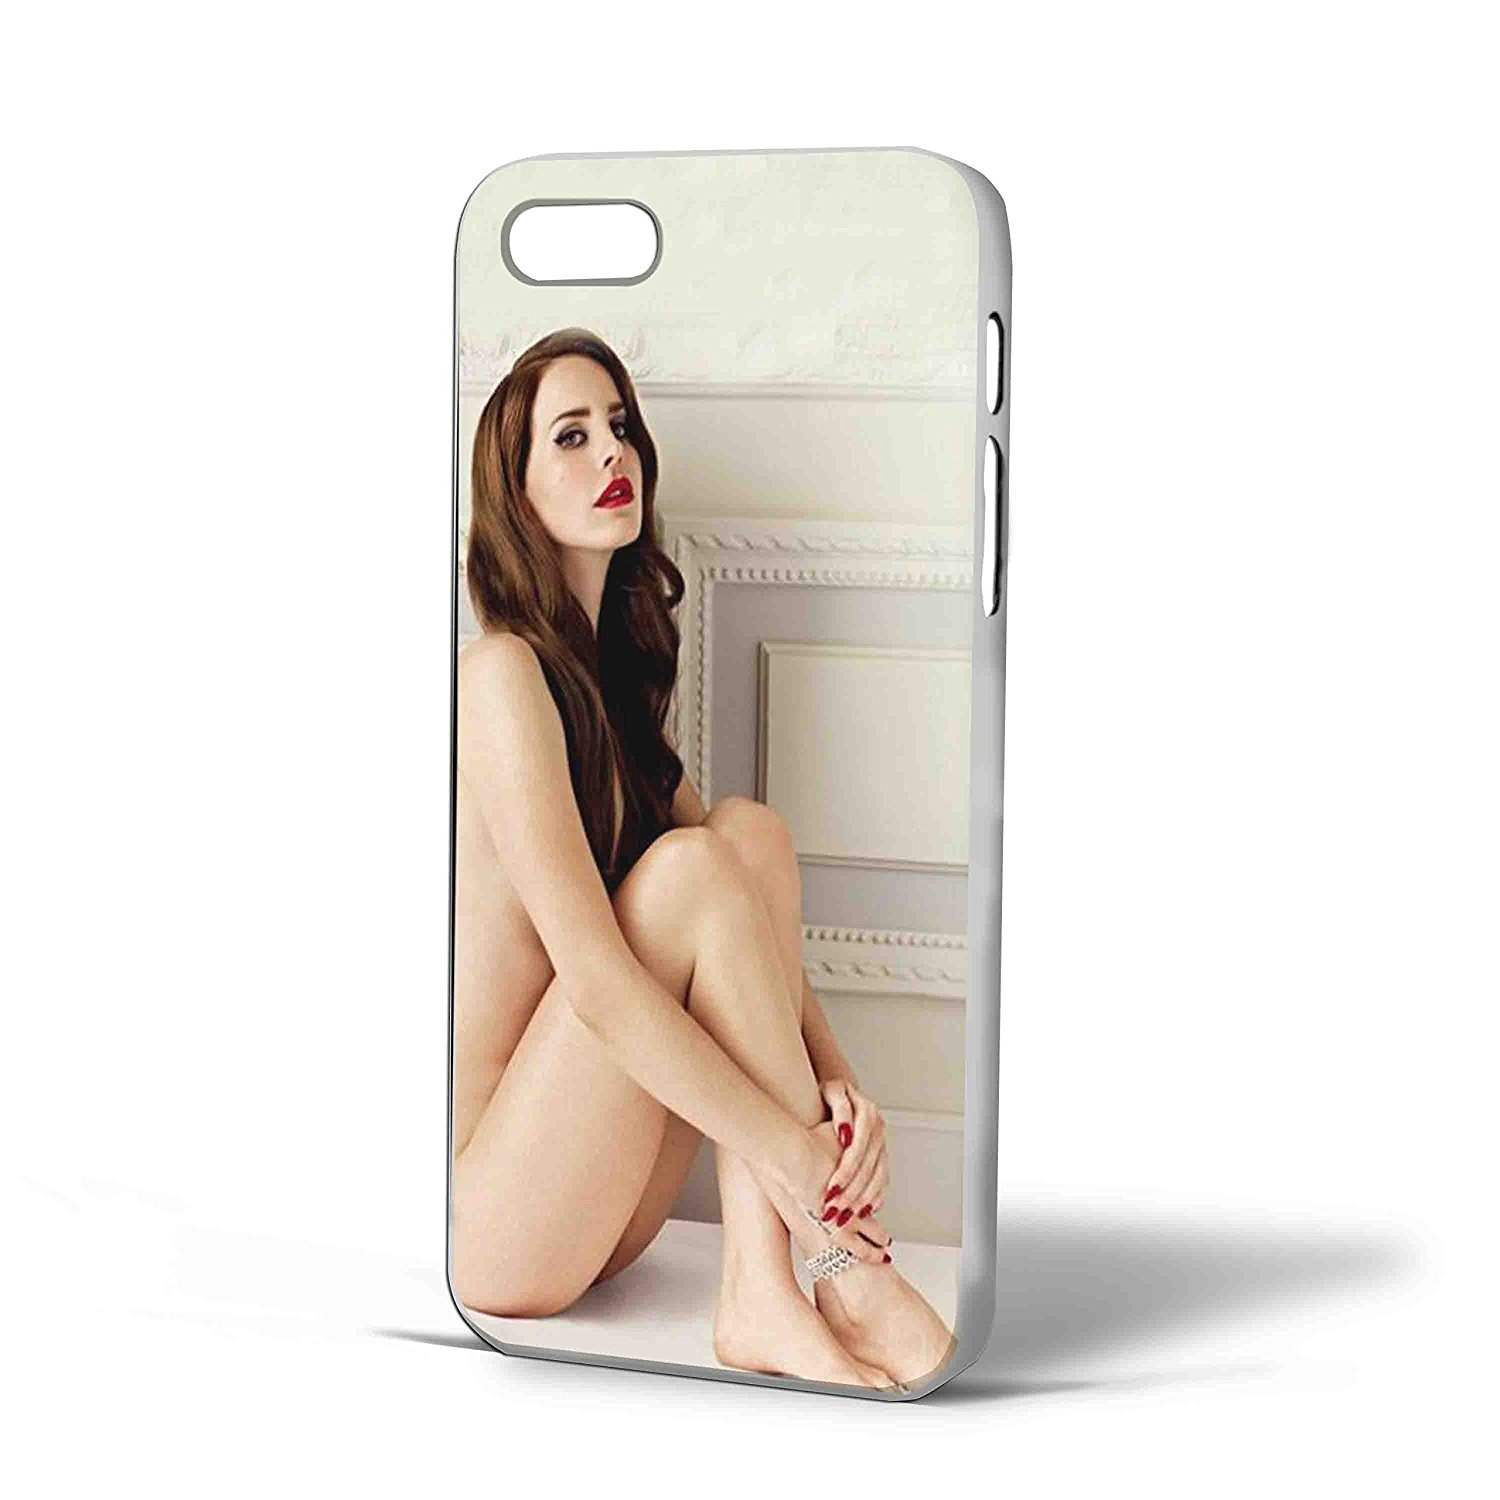 Ganma Lana Del Rey Naked Case For iPhone Case (Case For iPhone 5c white)